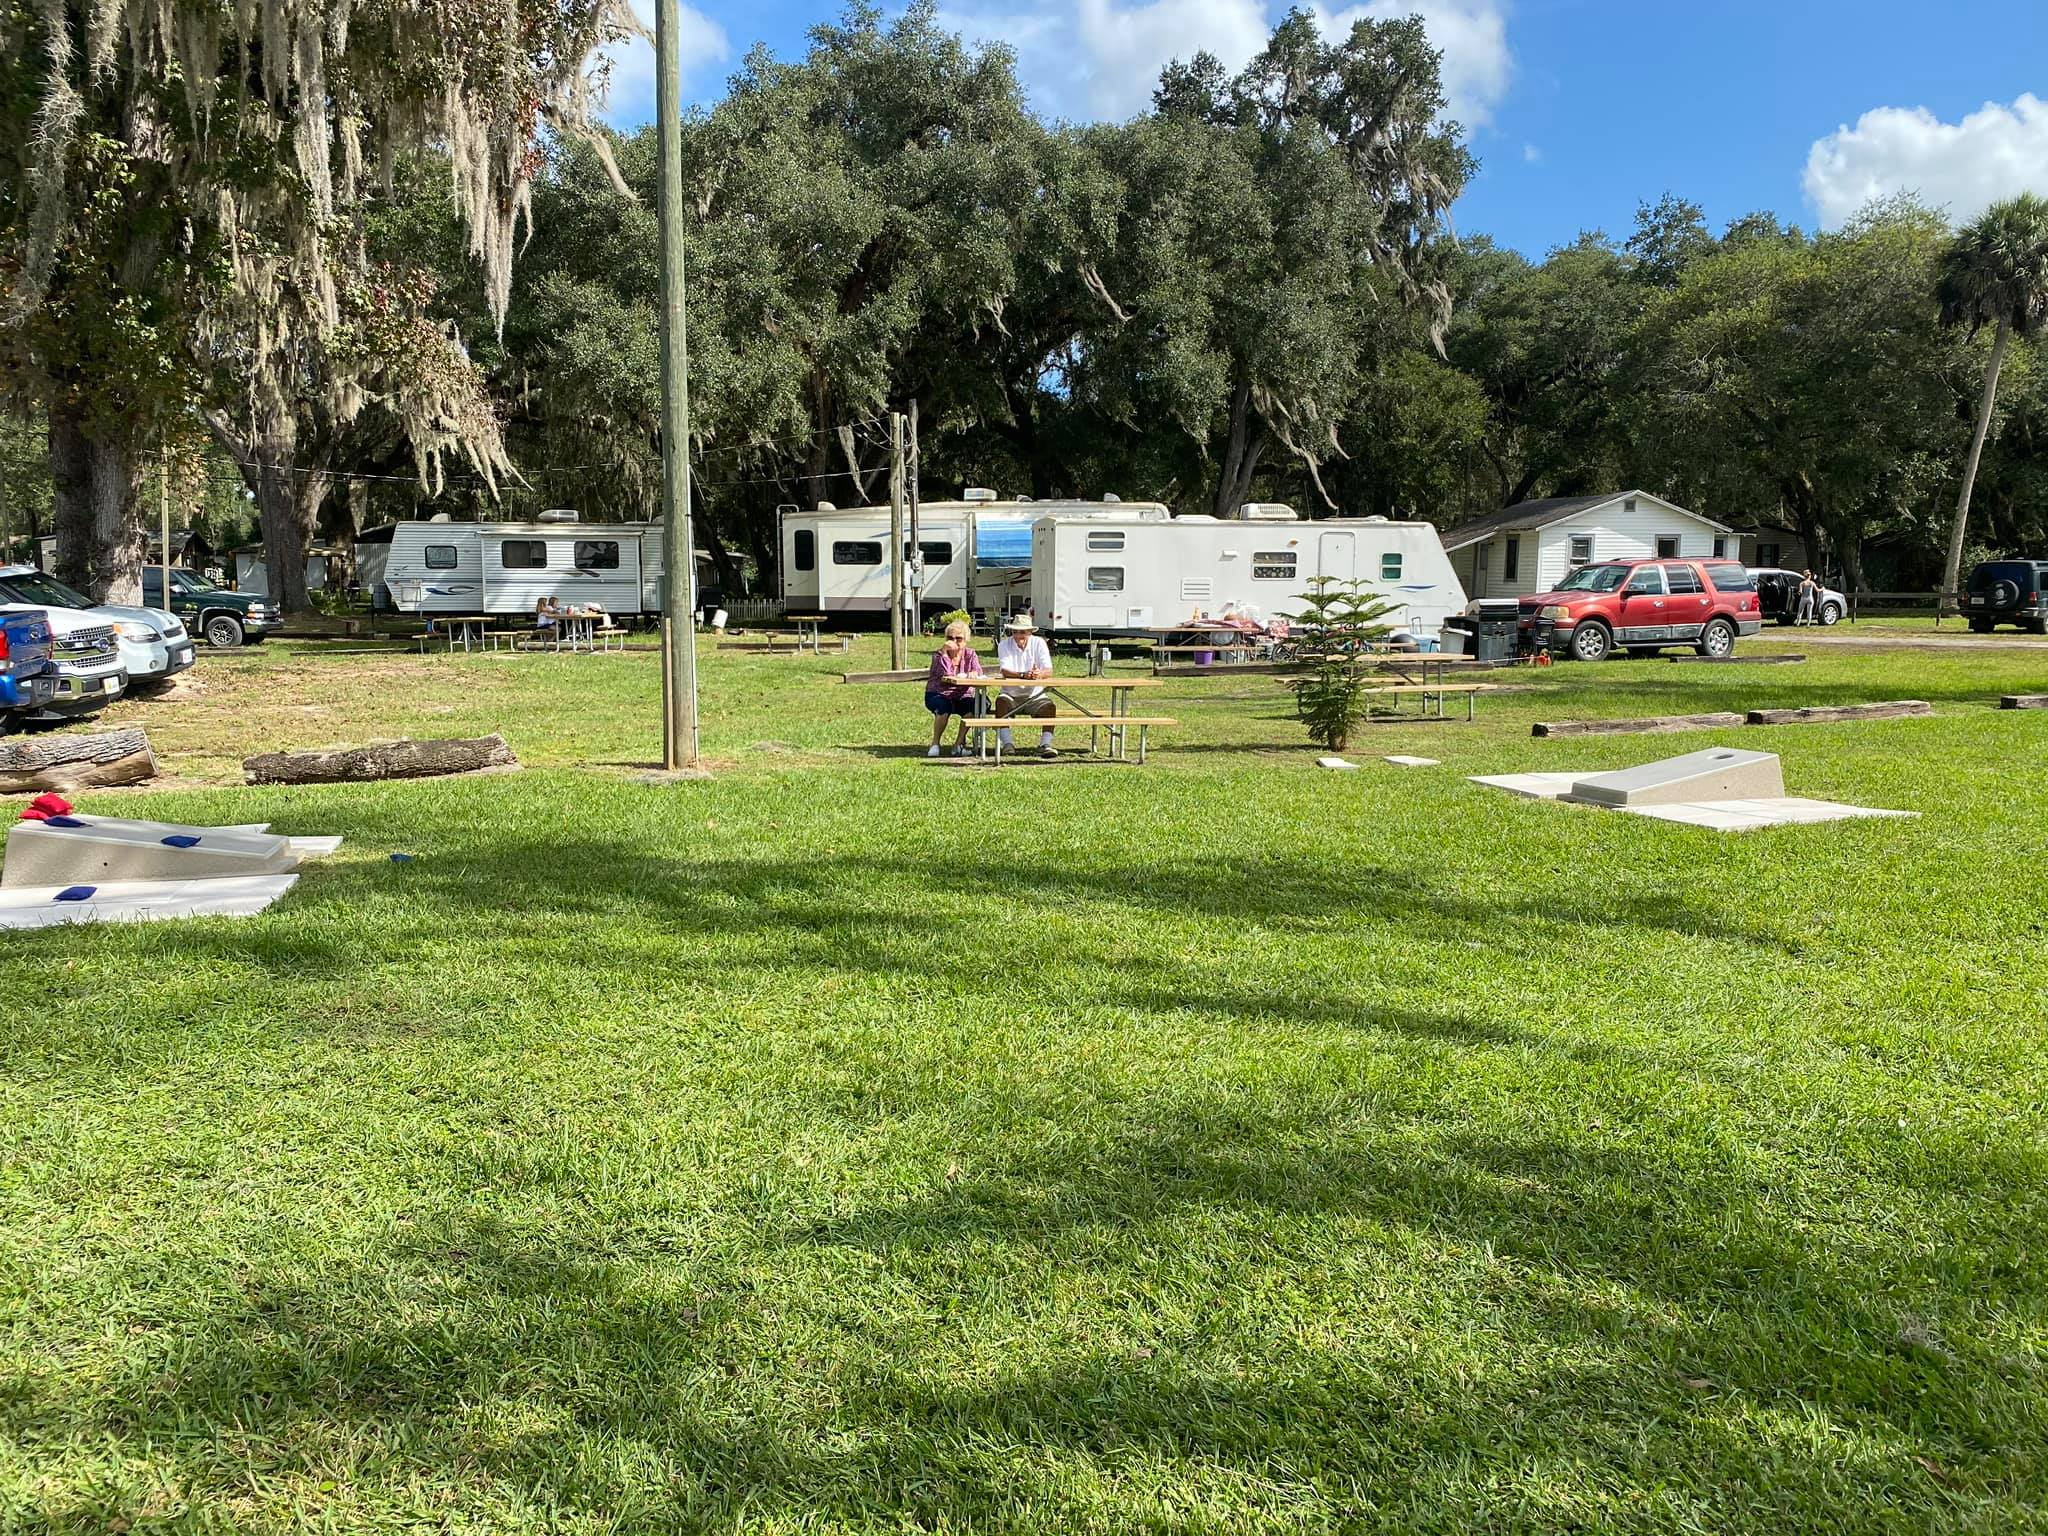 Nelson's Outdoor Resort-RV Sites and Cornhole